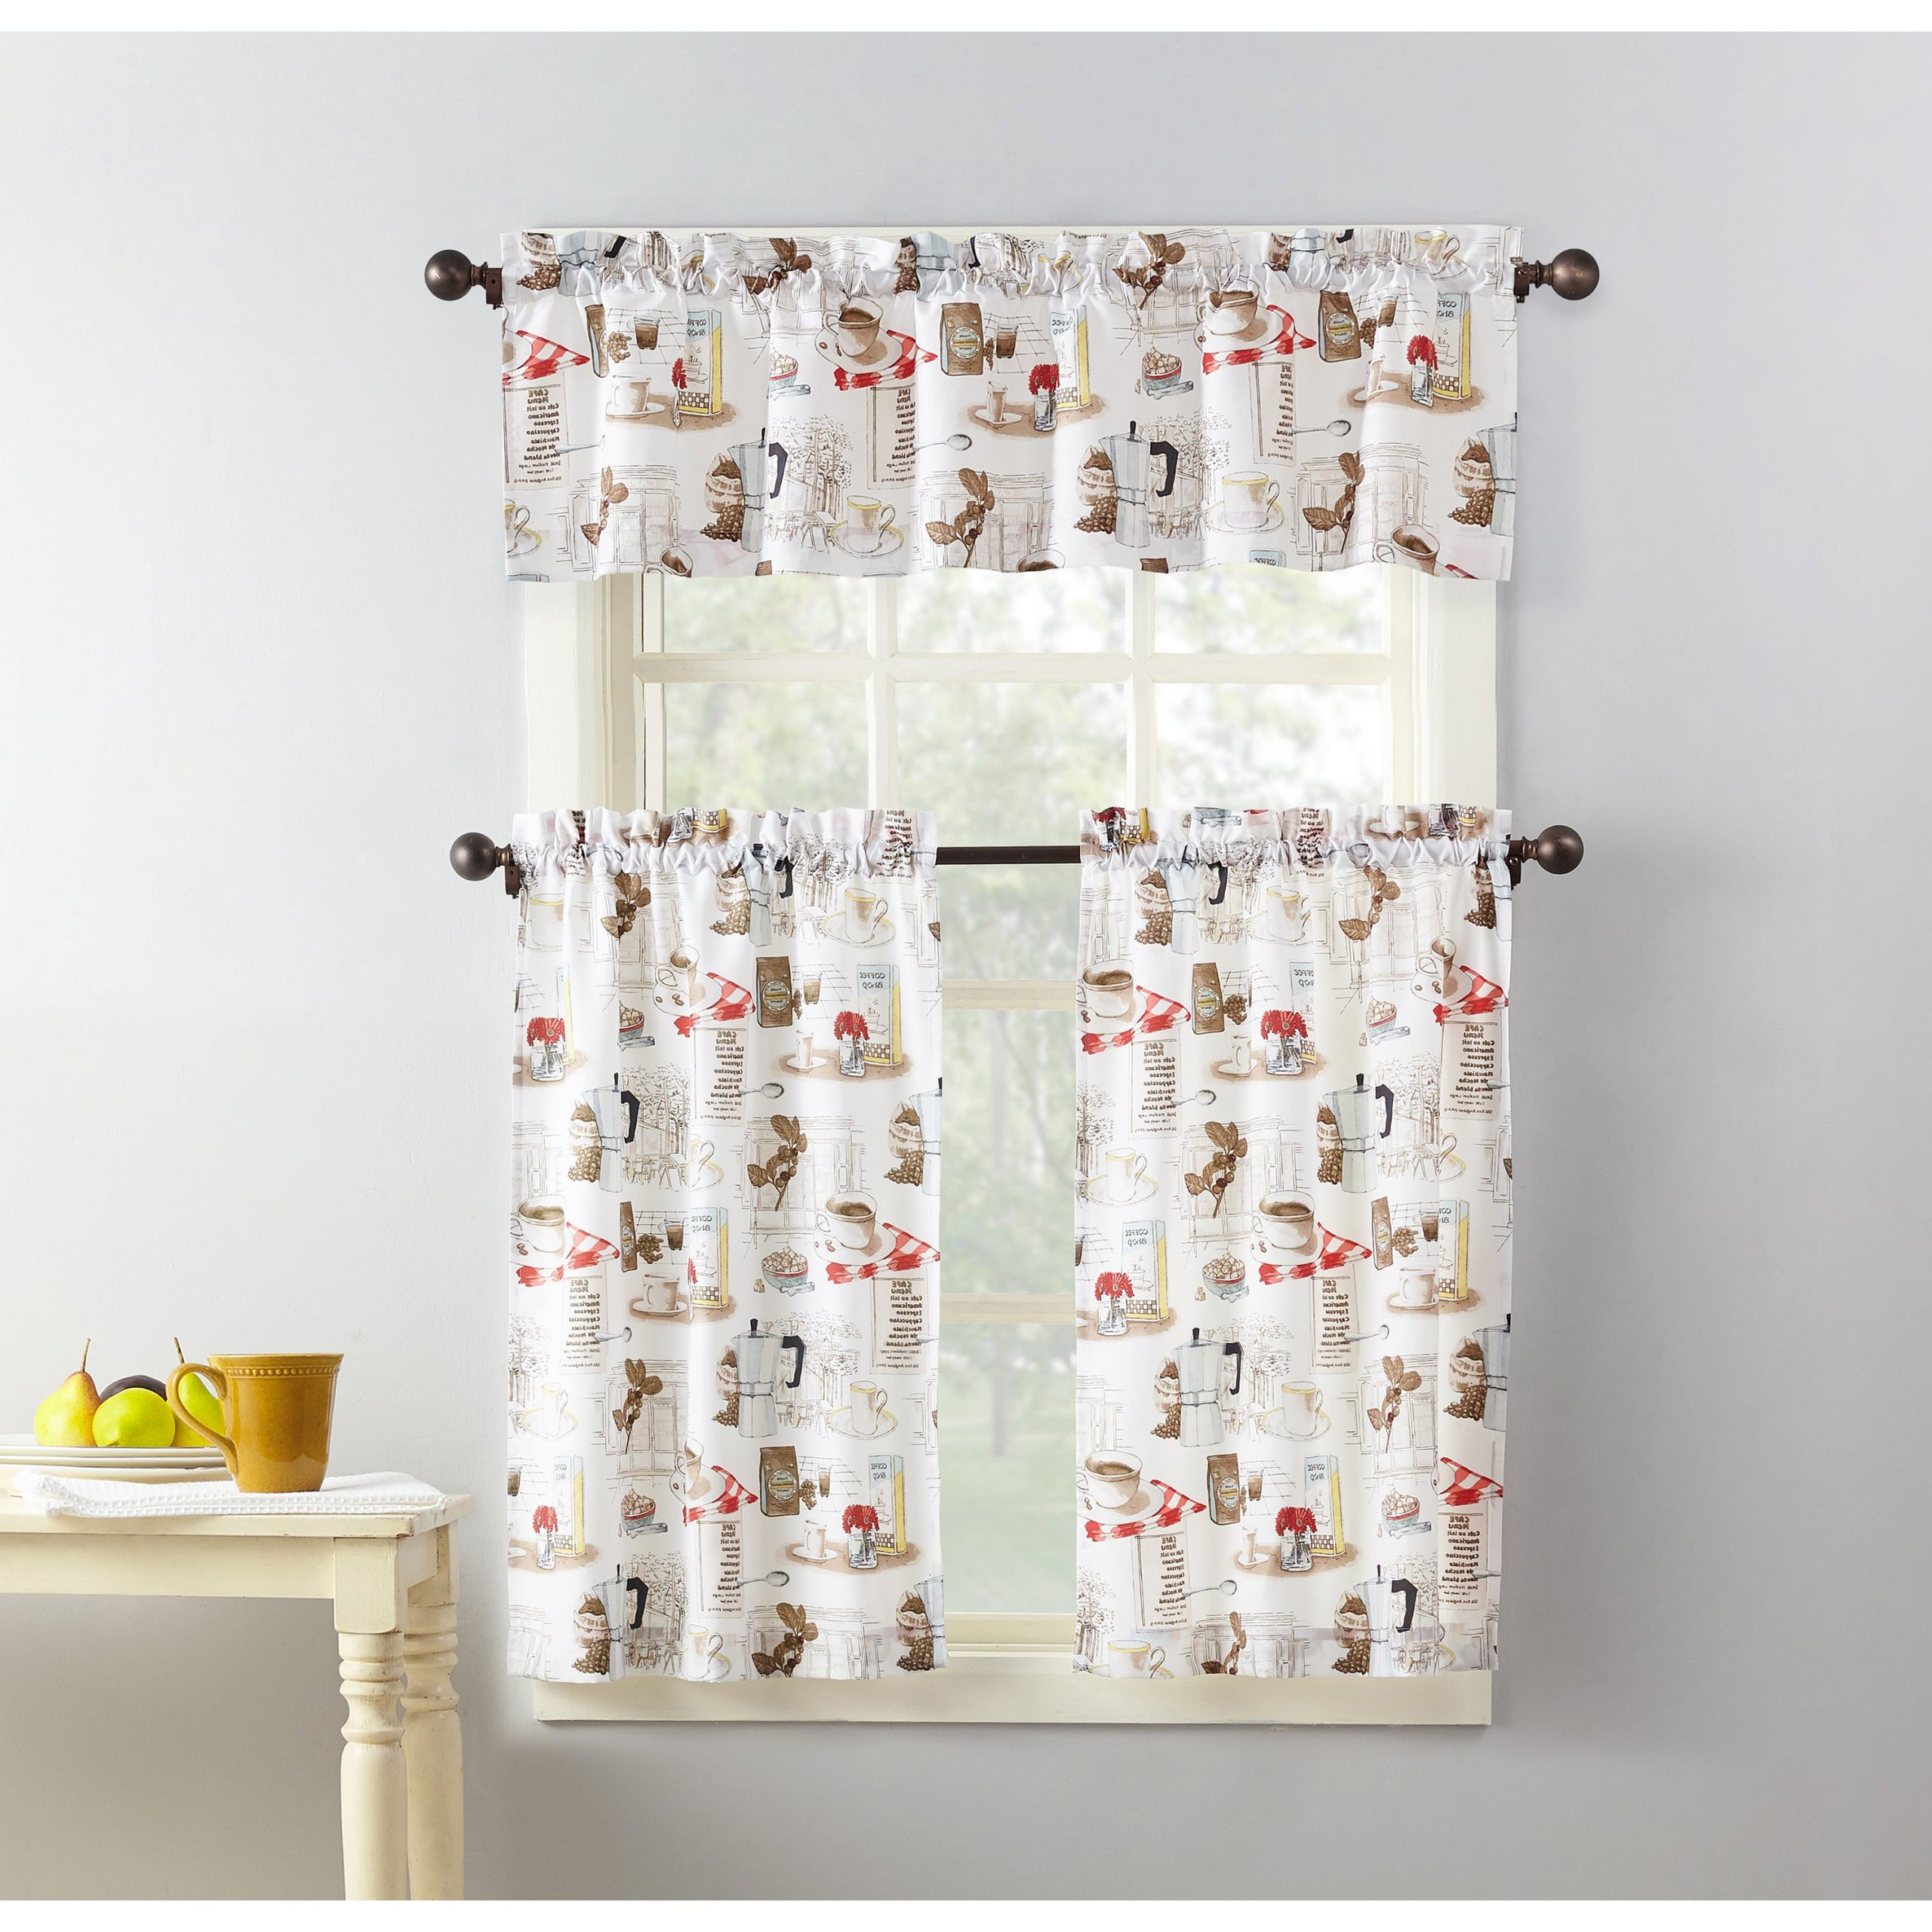 Embroidered Chef Black 5 Piece Kitchen Curtain Sets Throughout Recent No. 918 Brew Coffee Shop Microfiber 3 Piece Kitchen Curtain Valance And  Tiers Set (Gallery 6 of 20)